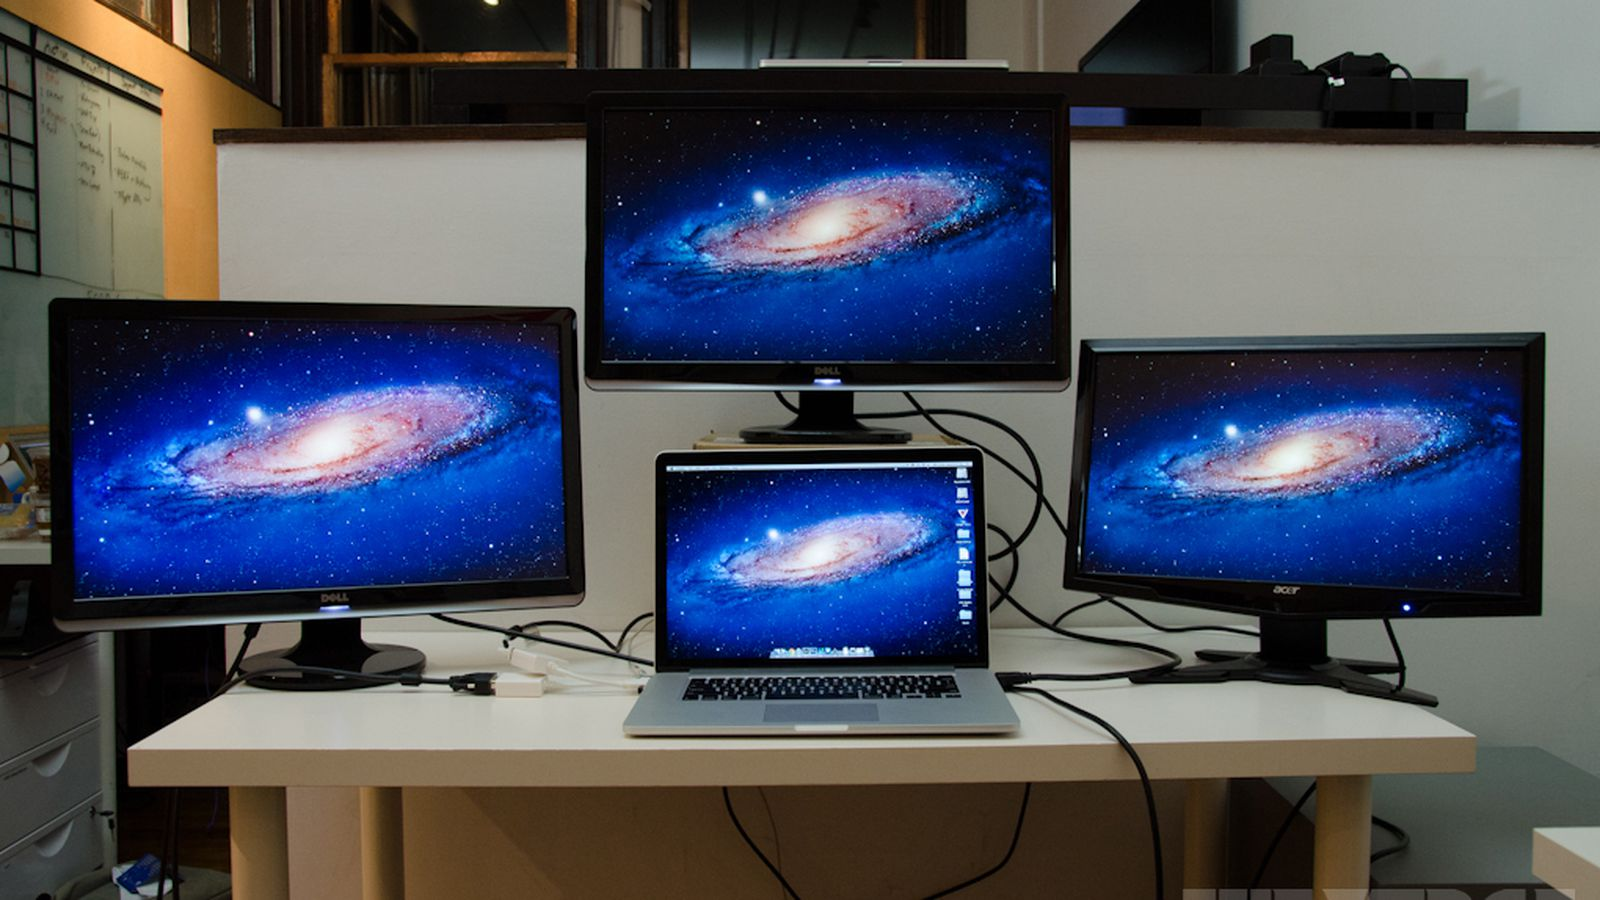 MacBook Pro with Retina display can drive four screens simultaneously - The Verge